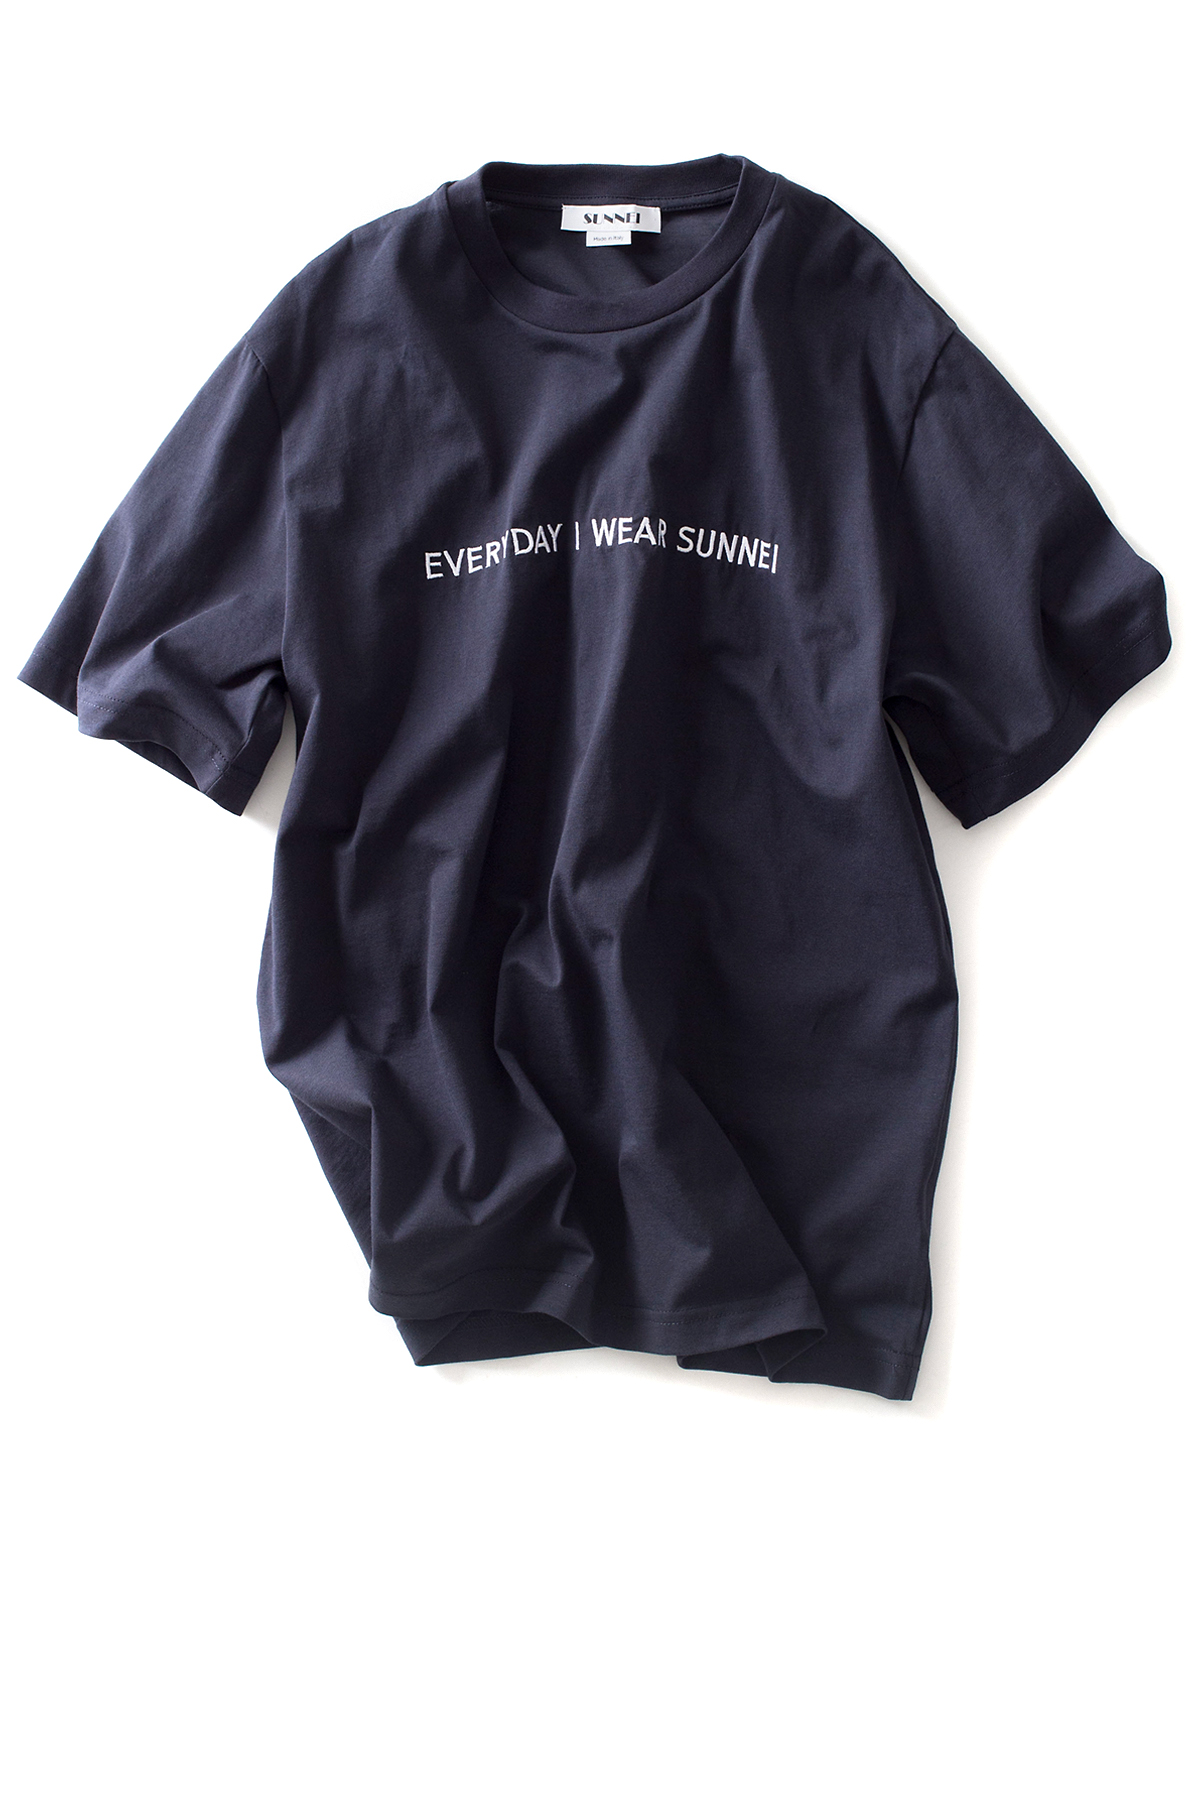 SUNNEI : Everyday I Wear Sunnei (Navy)